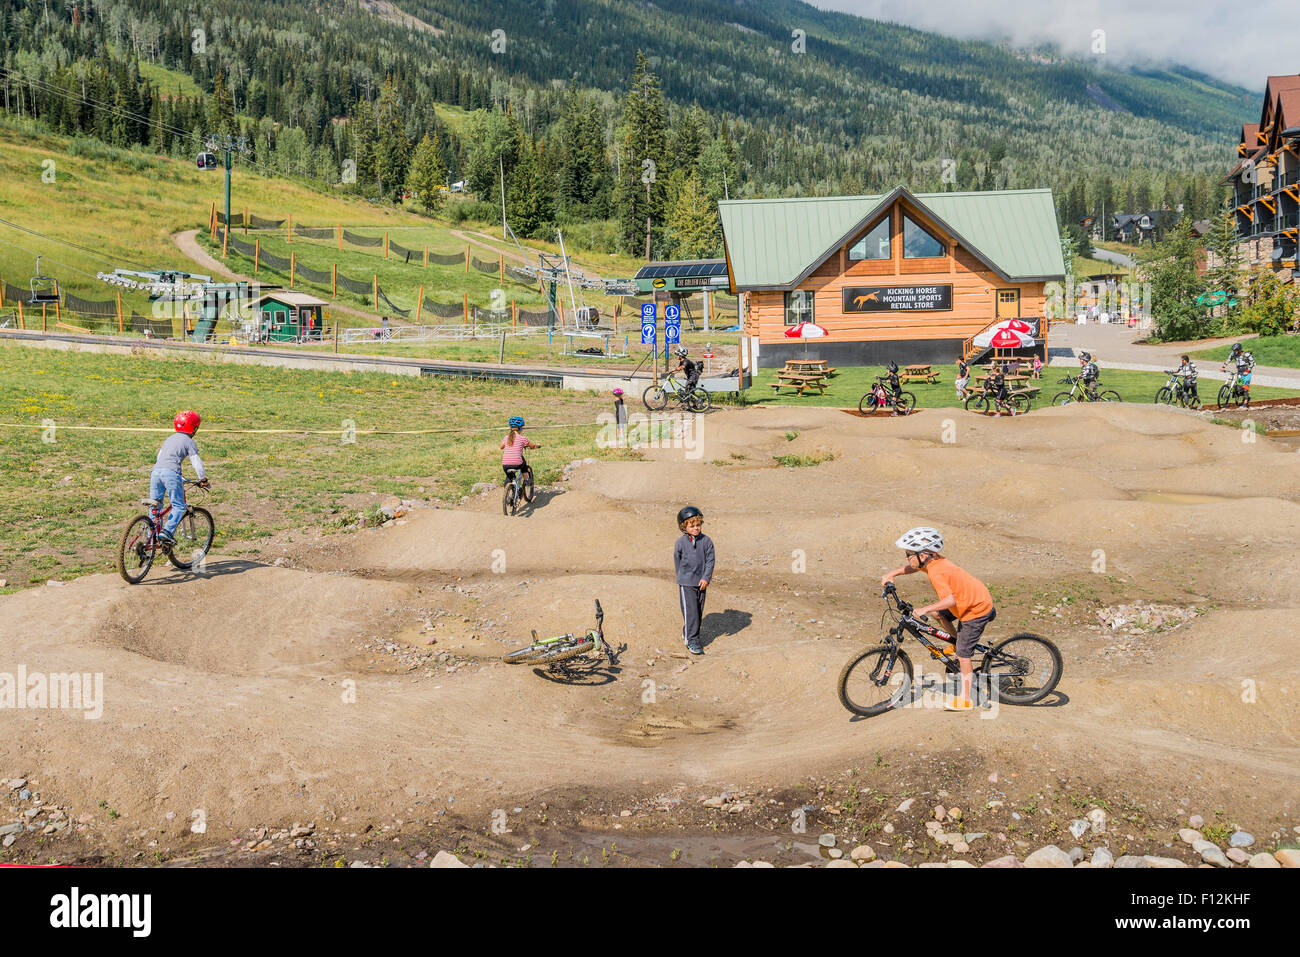 Kids Mountain bike course, Kicking Horse Resort, near Golden, British Columbia, Canada - Stock Image